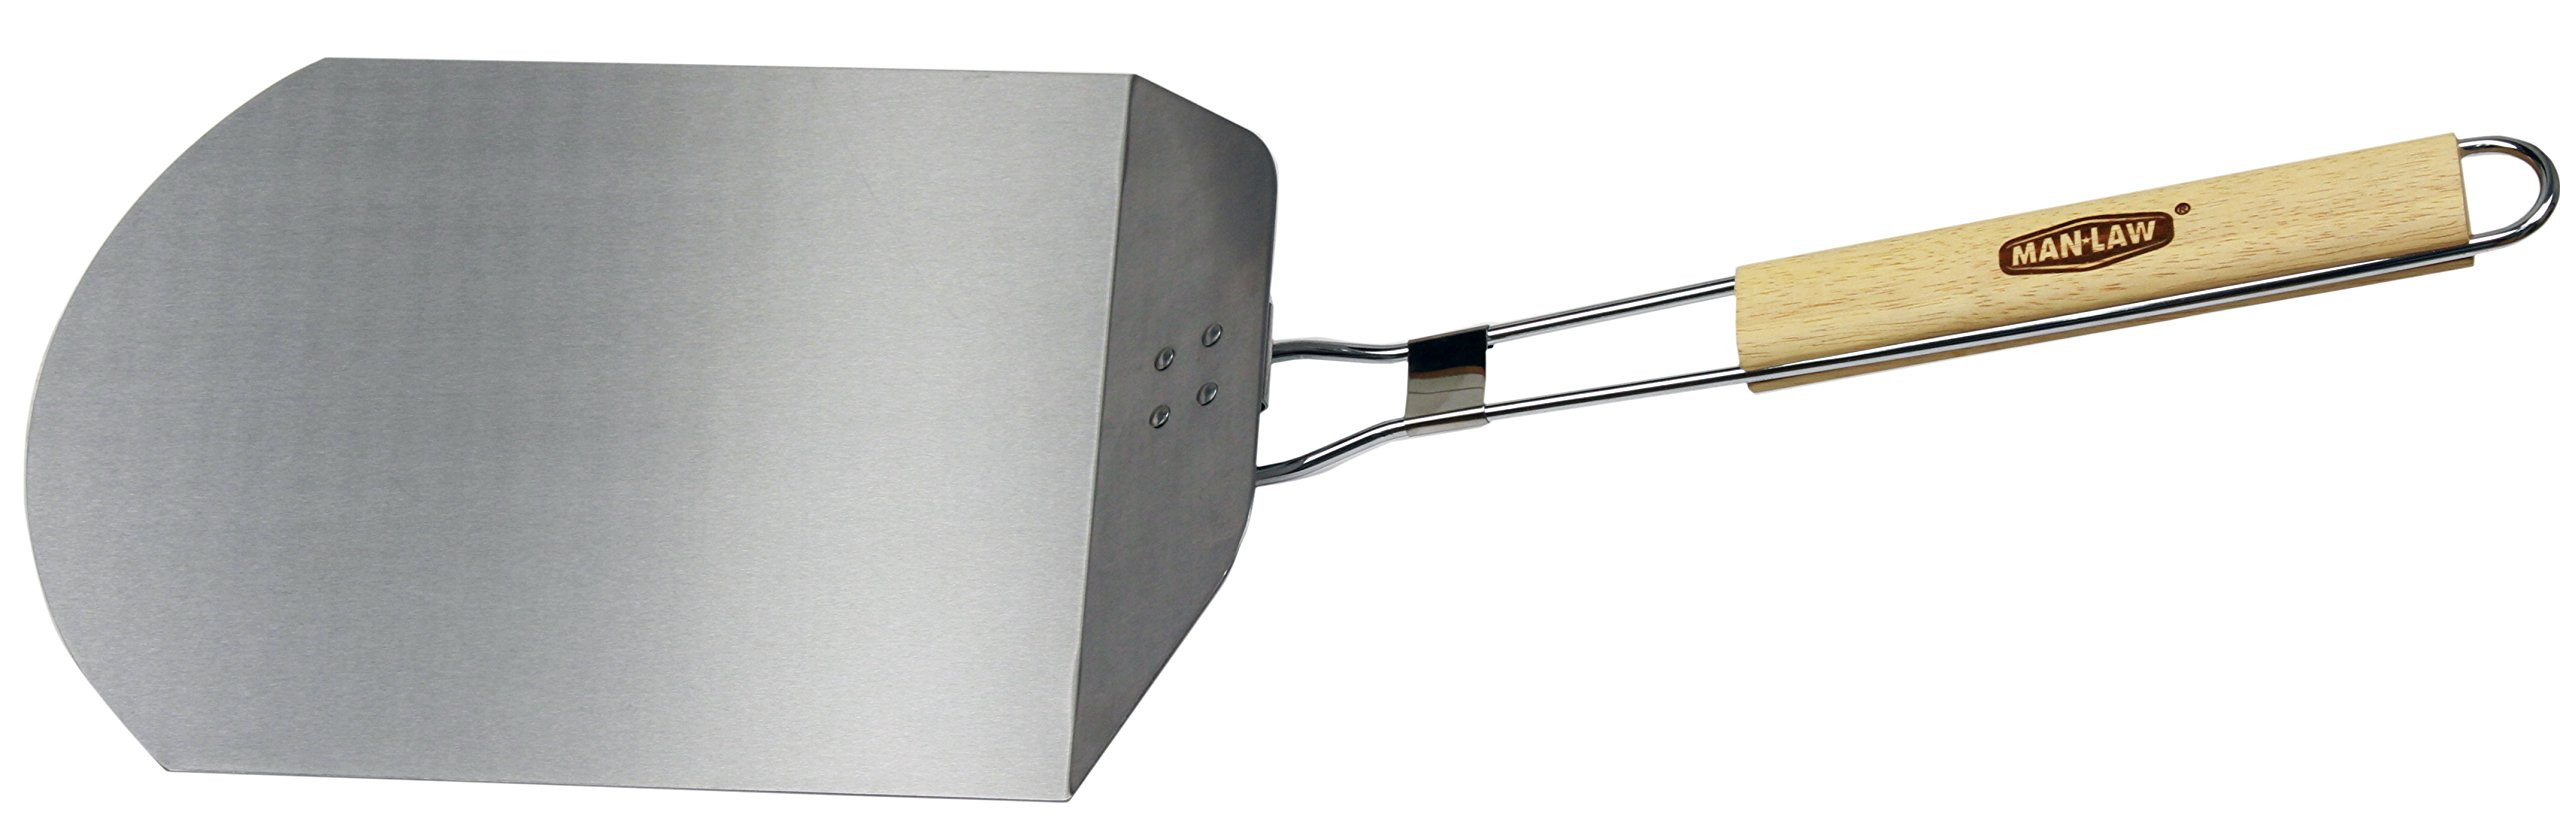 Man Law BBQ Products PP1 Series Foldable Pizza Peel, One Size, Aluminium/Stainless Steel and Wood